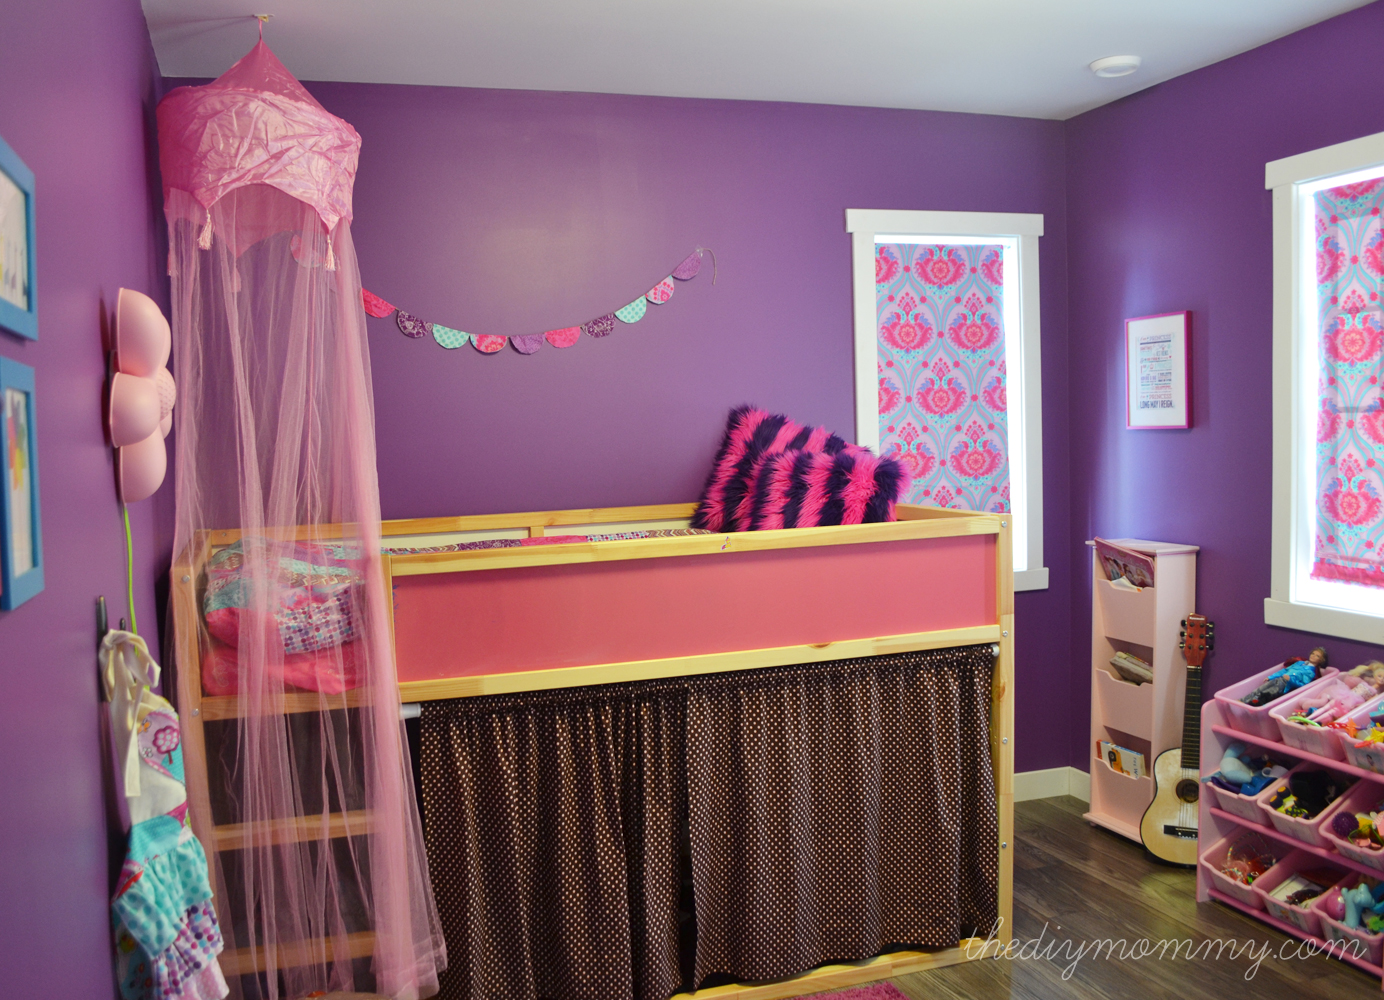 A bright jewel toned kid's room in purple, hot pink and turquoise - The DIY Mommy